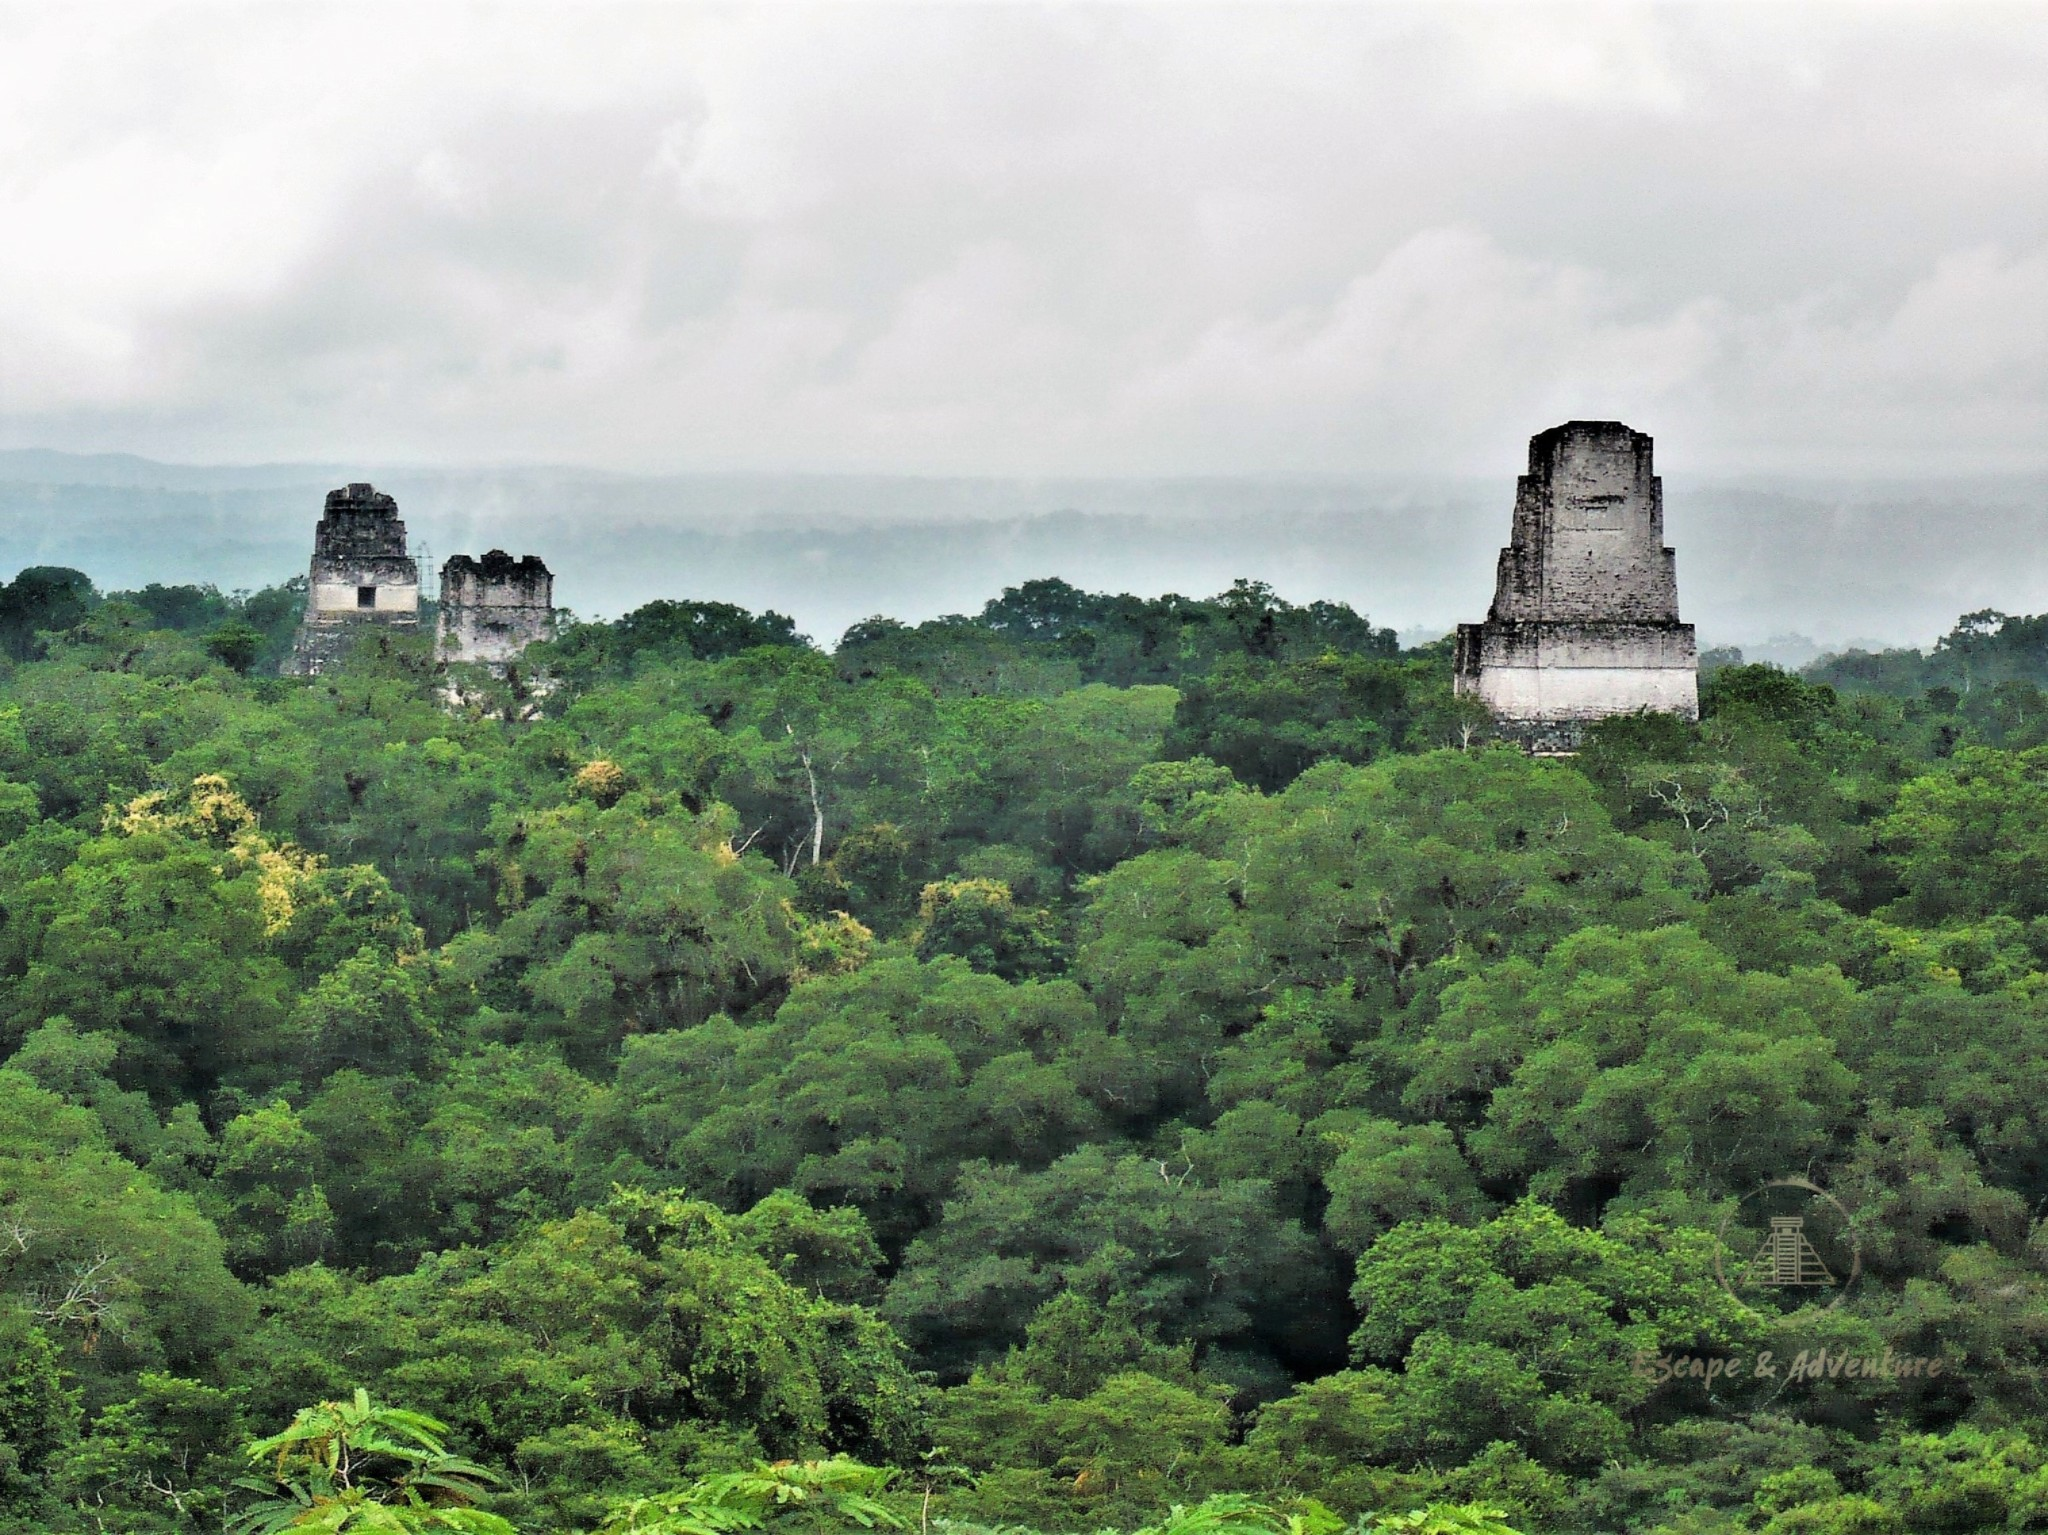 The tops of three Mayan pyramids rising out of the green jungle canopy in Tikal, Guatemala.